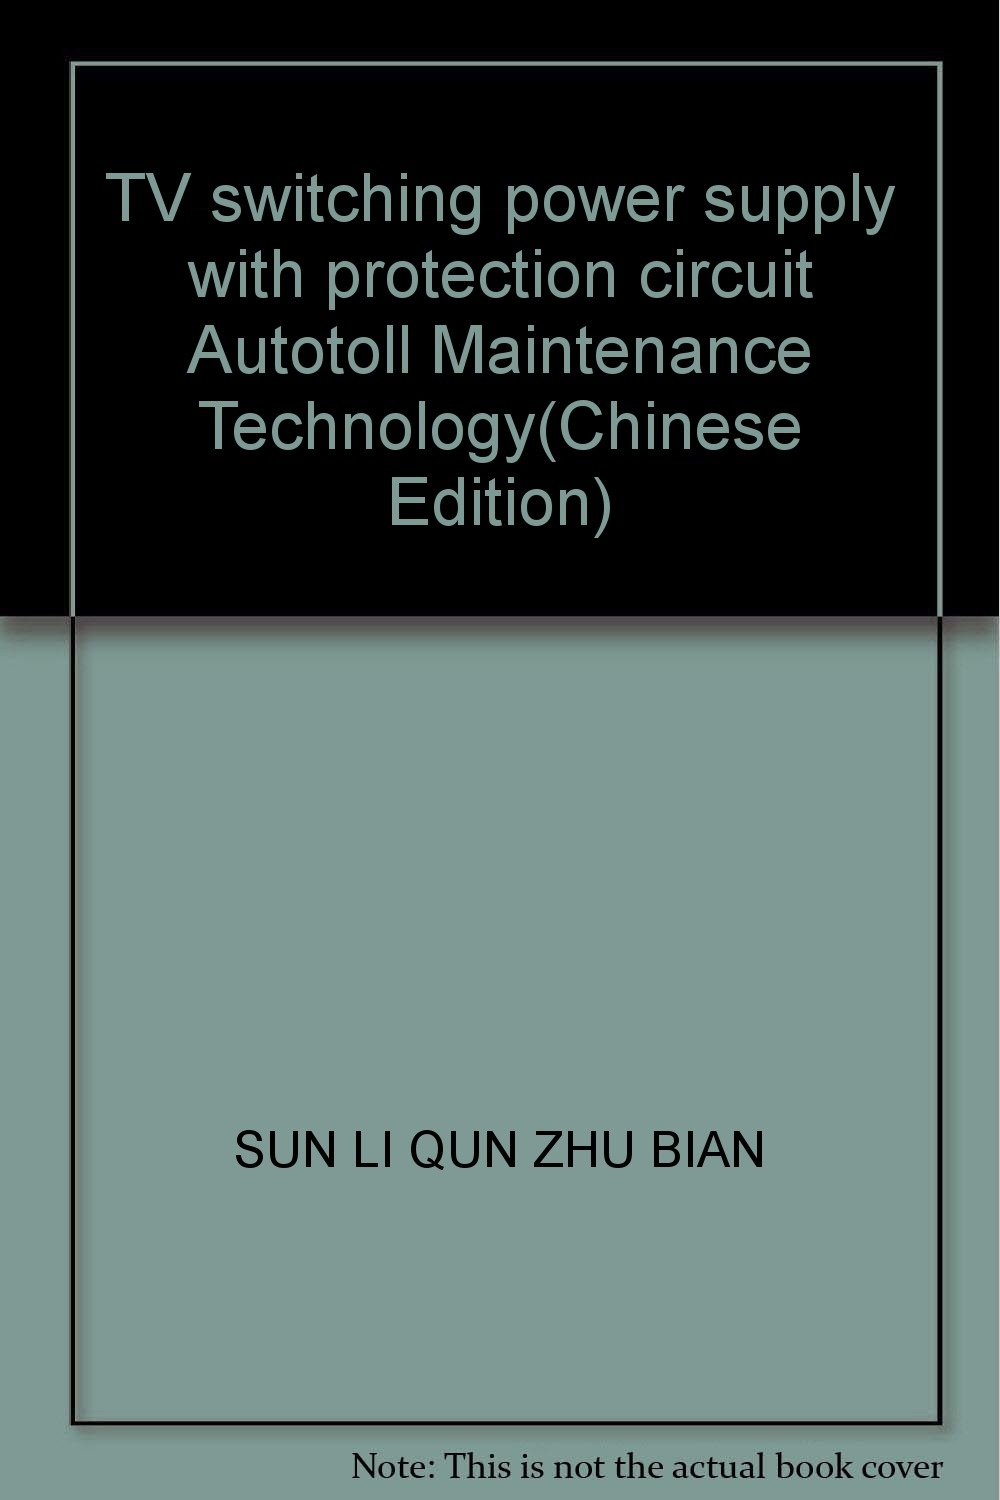 Tv Switching Power Supply With Protection Circuit Autotoll Protectors On Smps Maintenance Technology Sun Li Qun Zhu Bian 9787118039504 Books